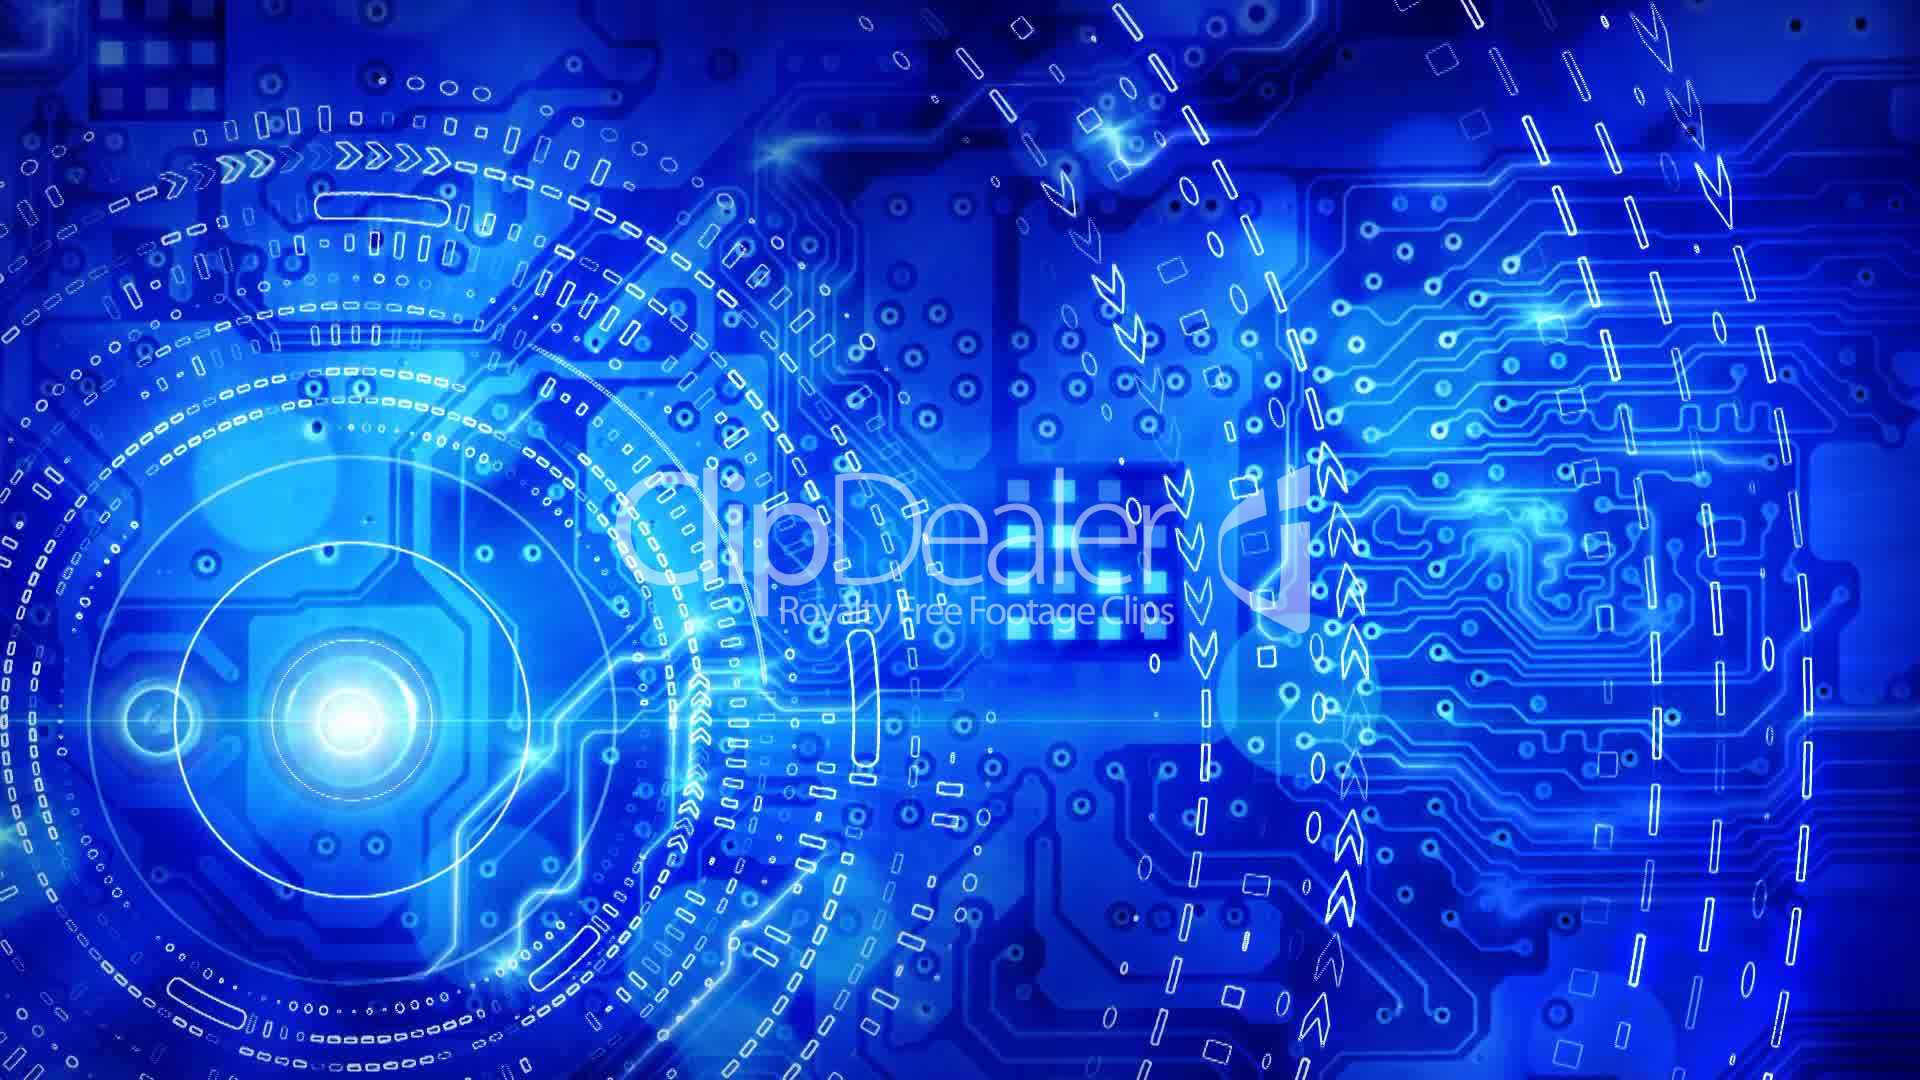 Backlit Computer Circuit Board Background Royalty Free Auto Stock Image 20108511 Blue Loop